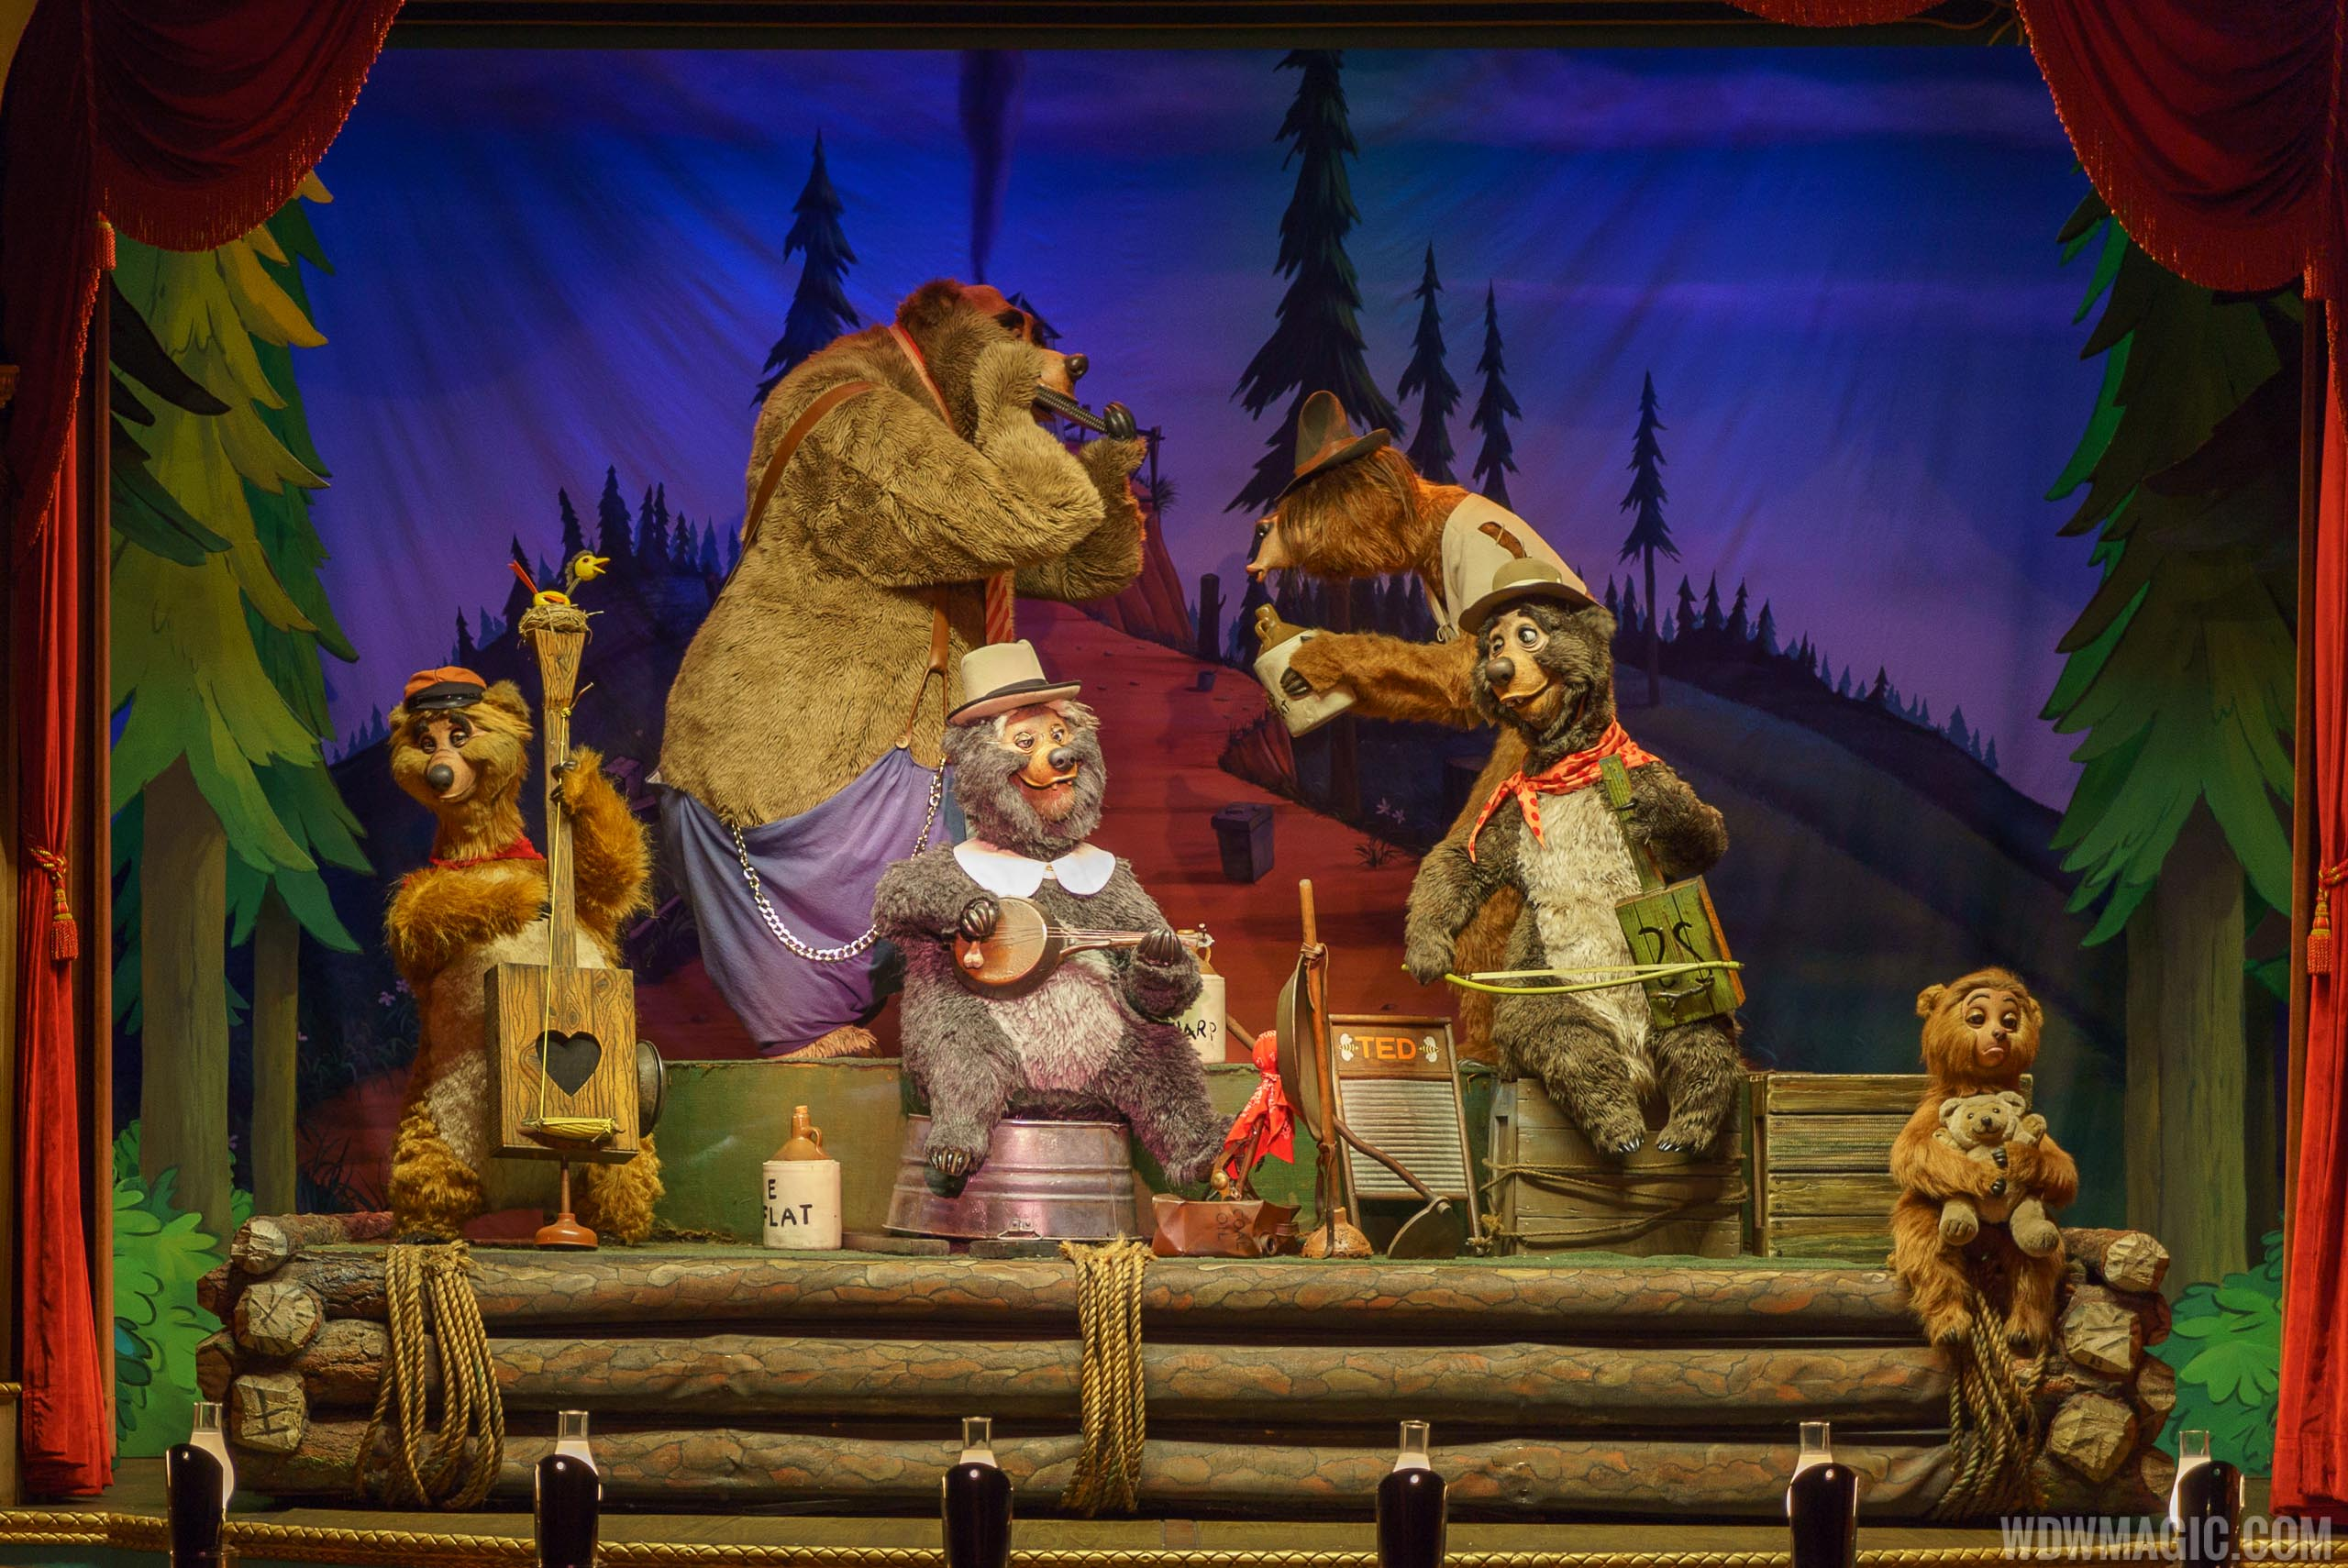 Country Bear Jamboree overview